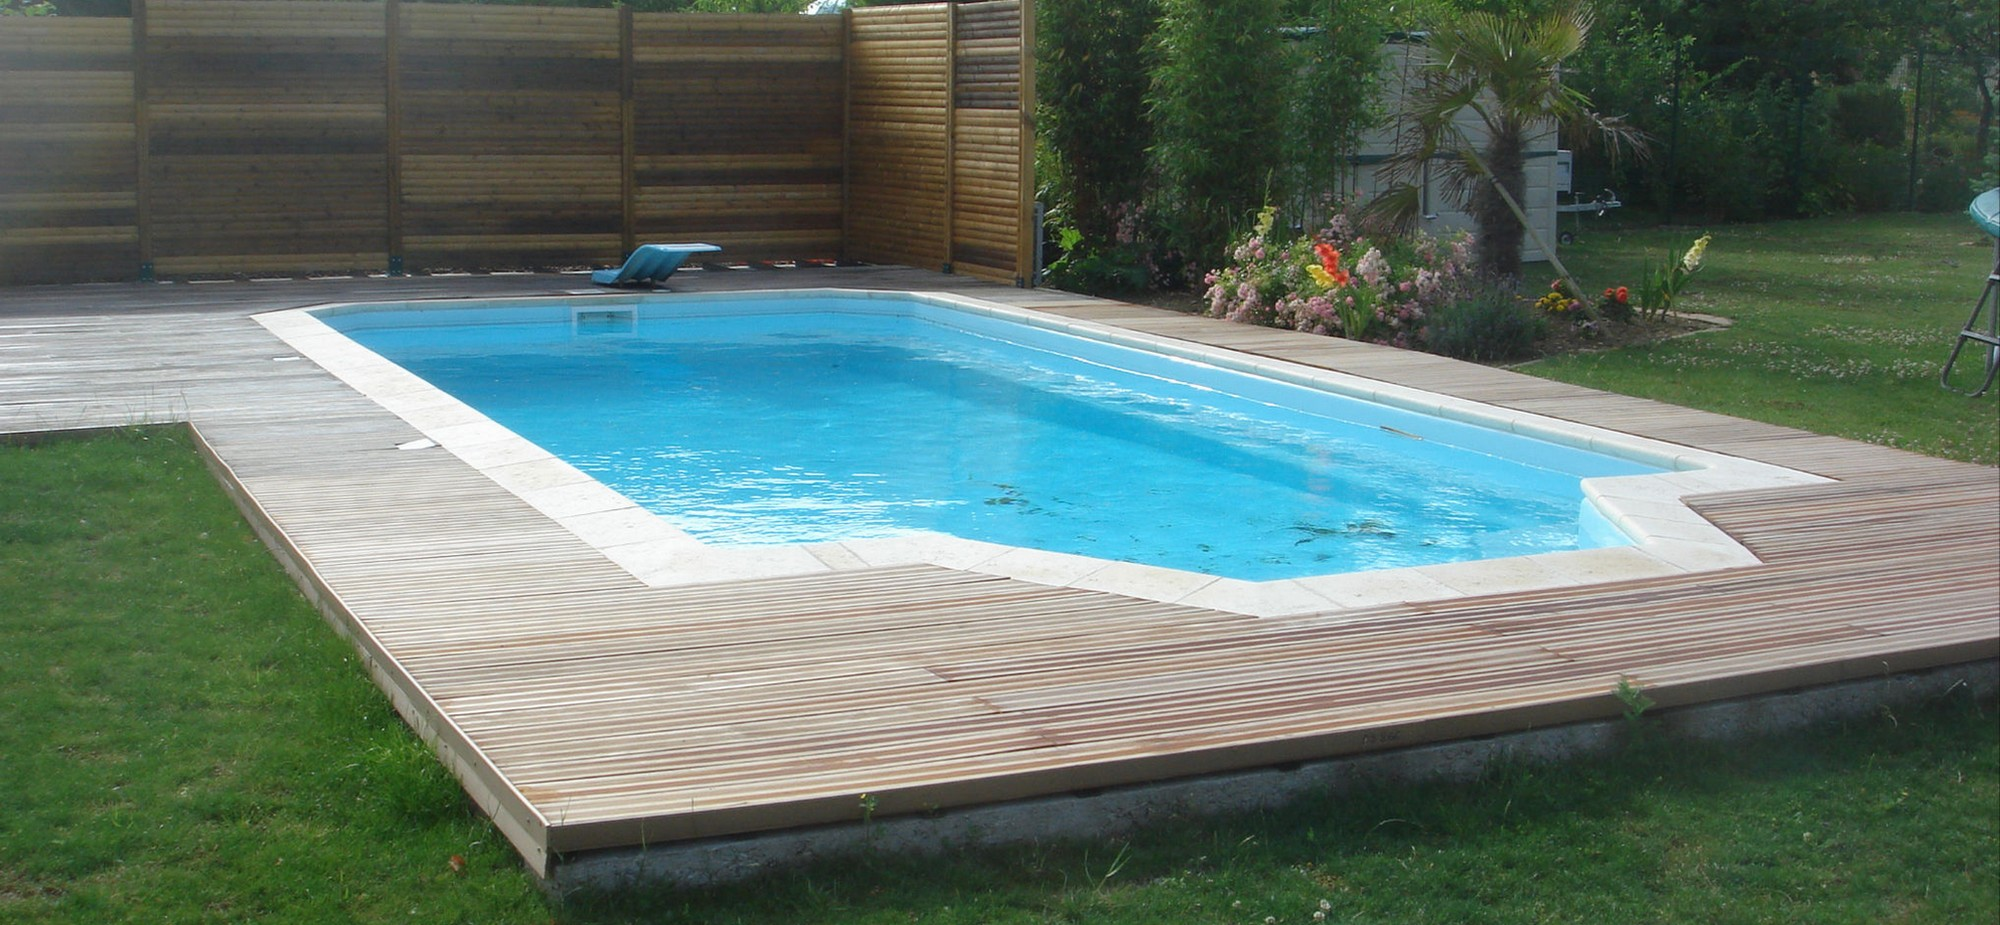 notre catalogue de mod les de piscine hors sol en picardie. Black Bedroom Furniture Sets. Home Design Ideas